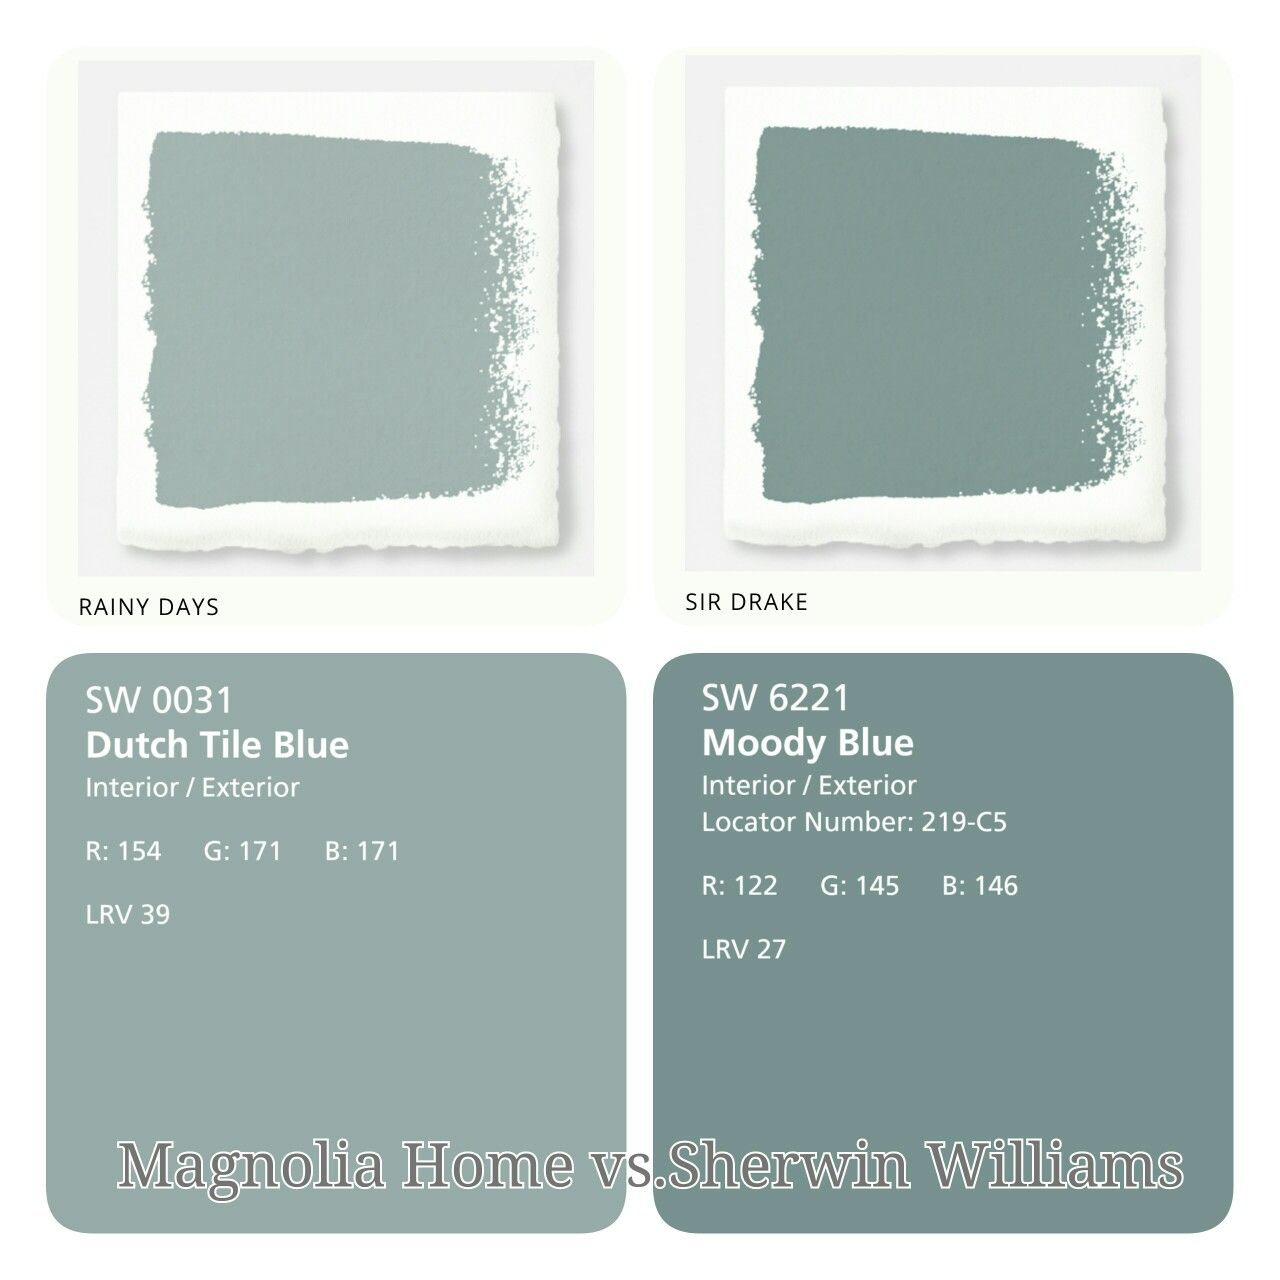 magnolia home paint vs sherwin williams paint just used sherwin